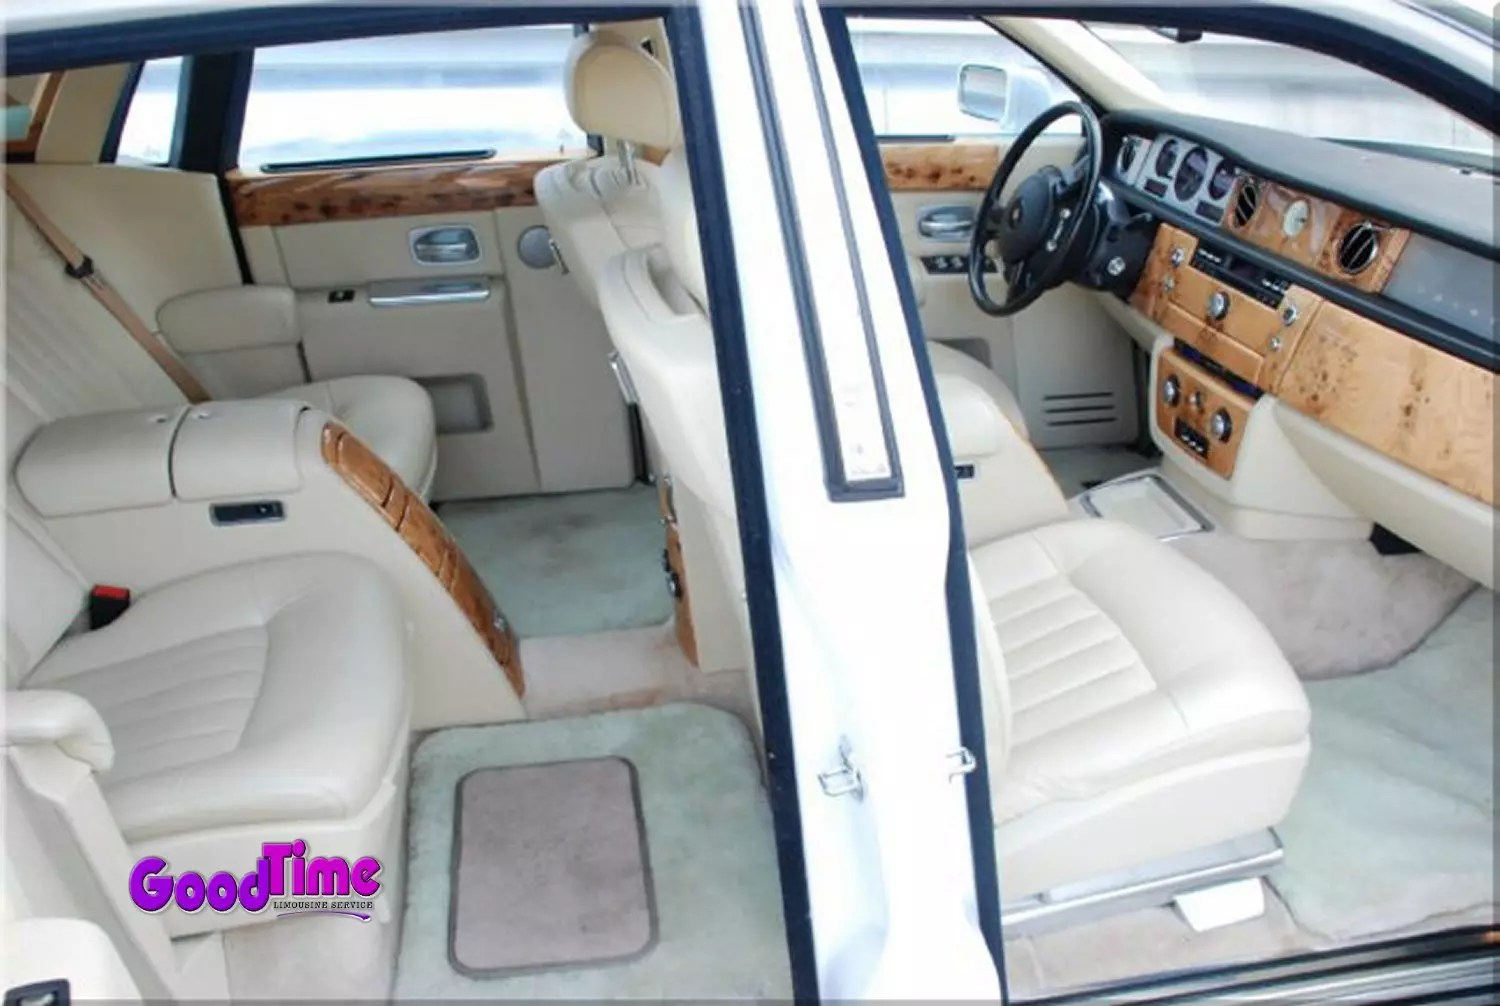 Rolls Royce Phantom White Limo Int 8 1 LIMO RENTAL FLEET